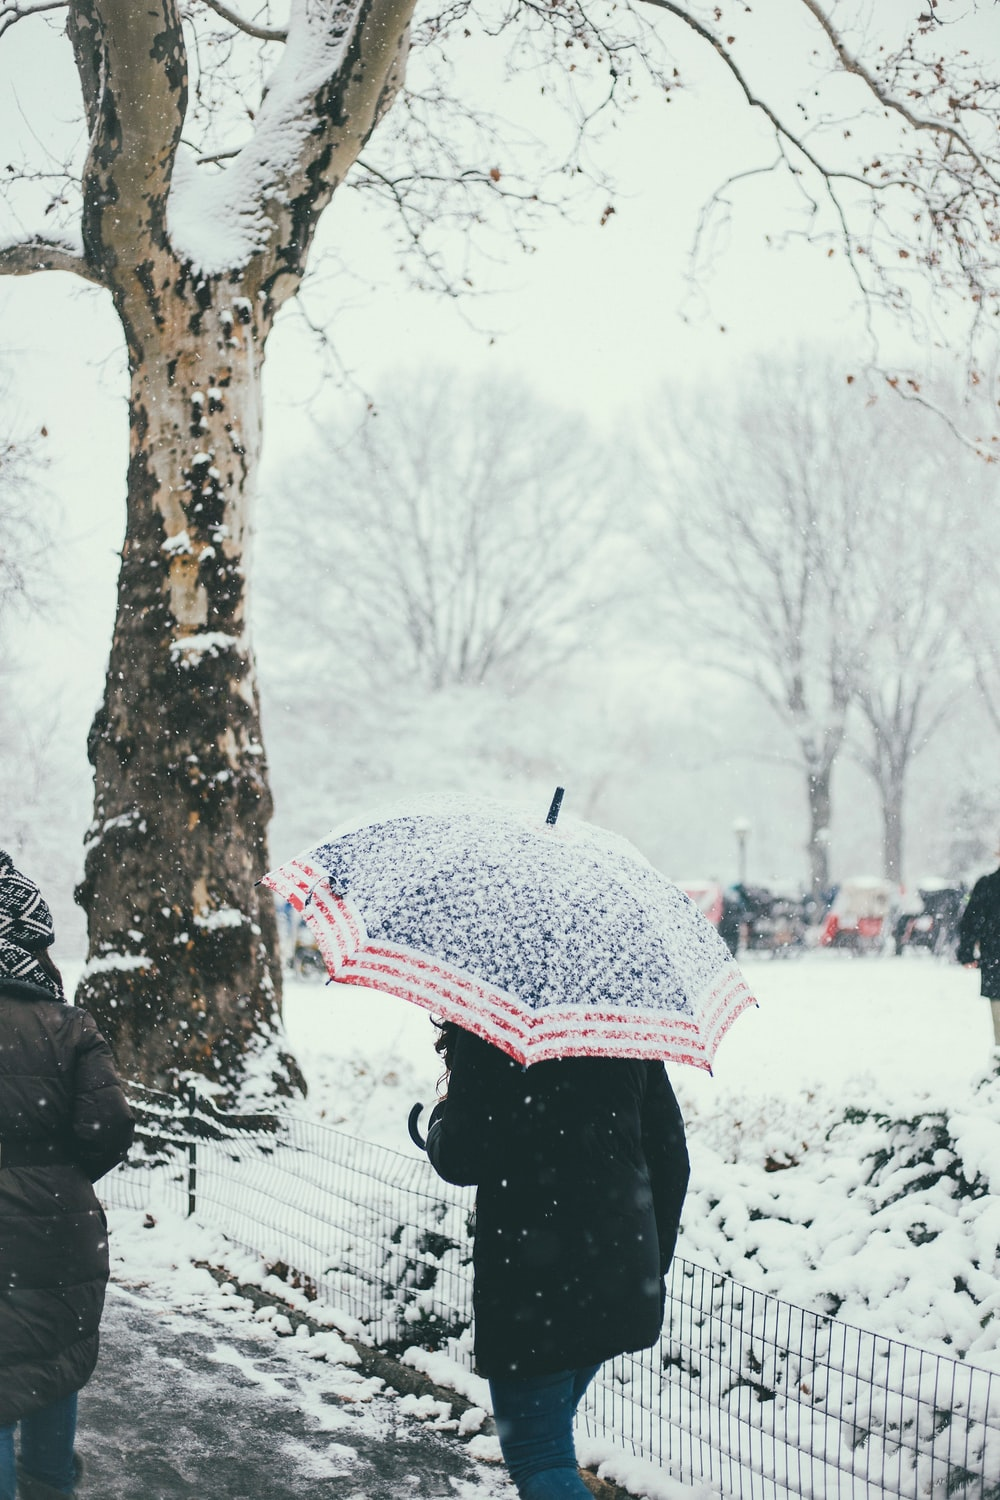 person walking while holding umbrella during snowy weather